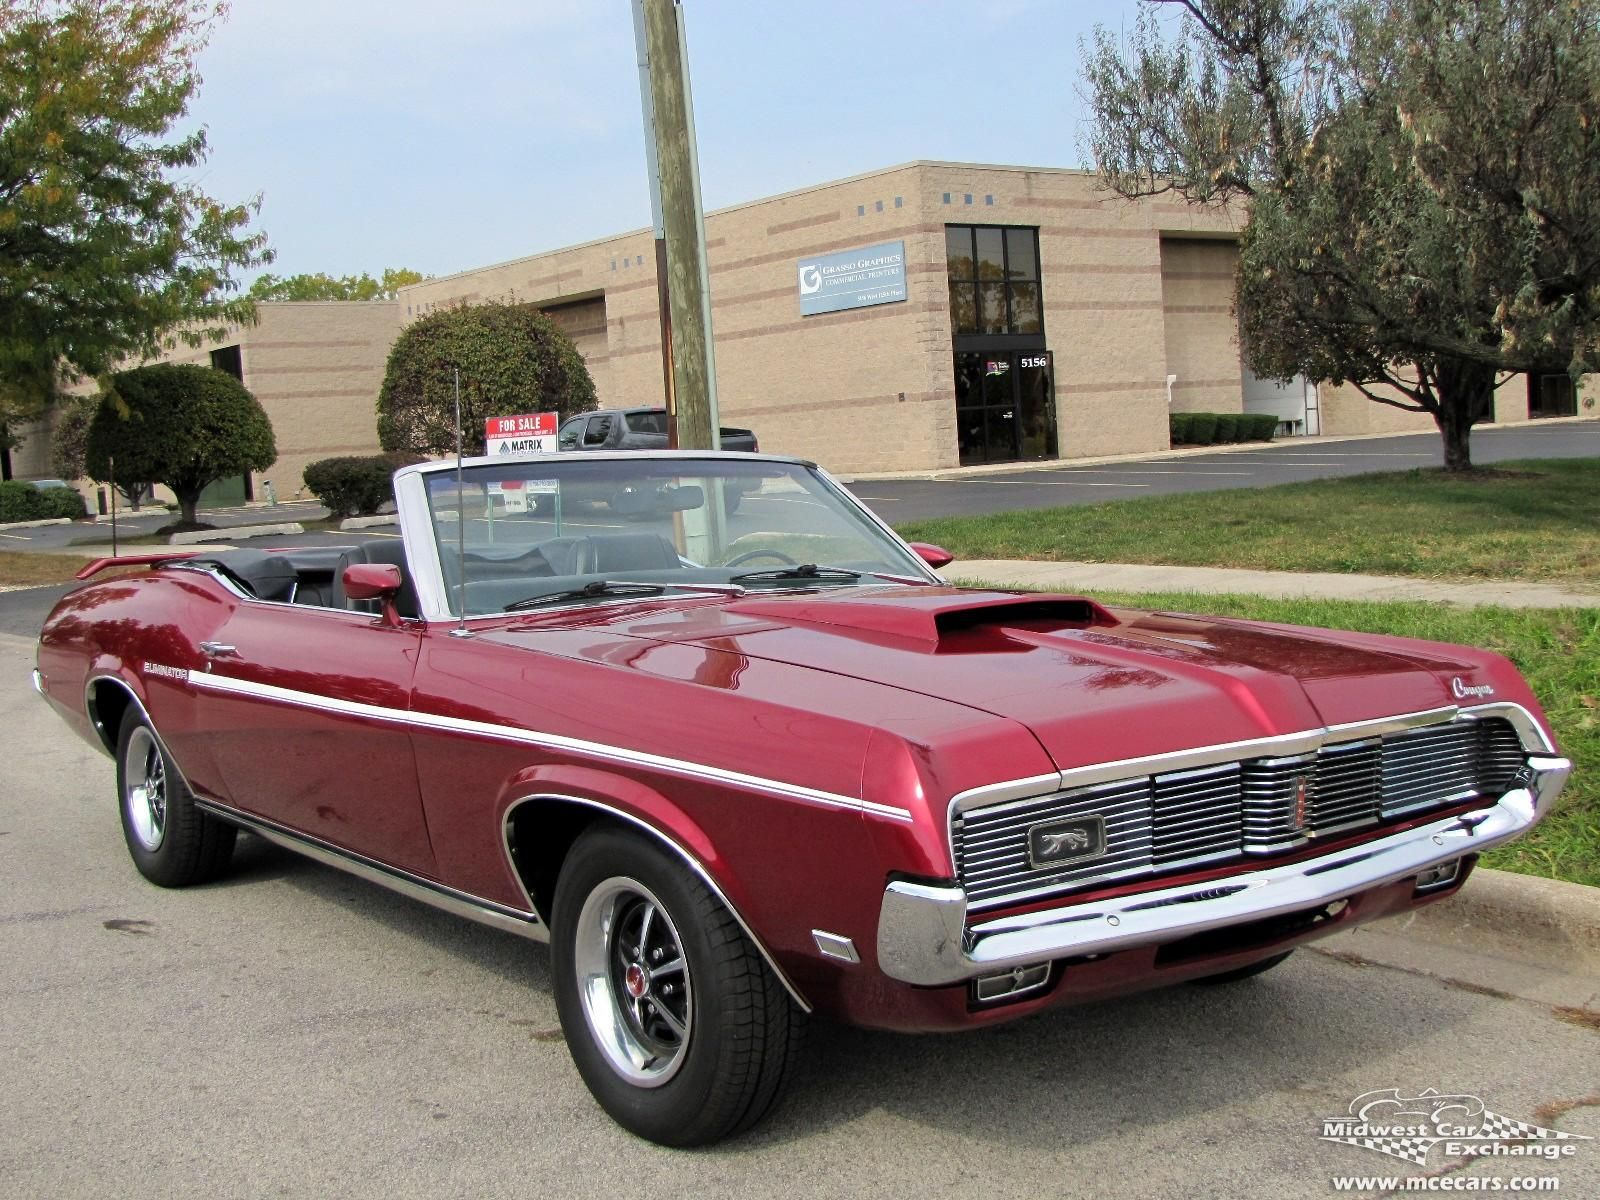 1969 Mercury Cougar XR-7 Convertible - | Hot Rods V | Pinterest ...